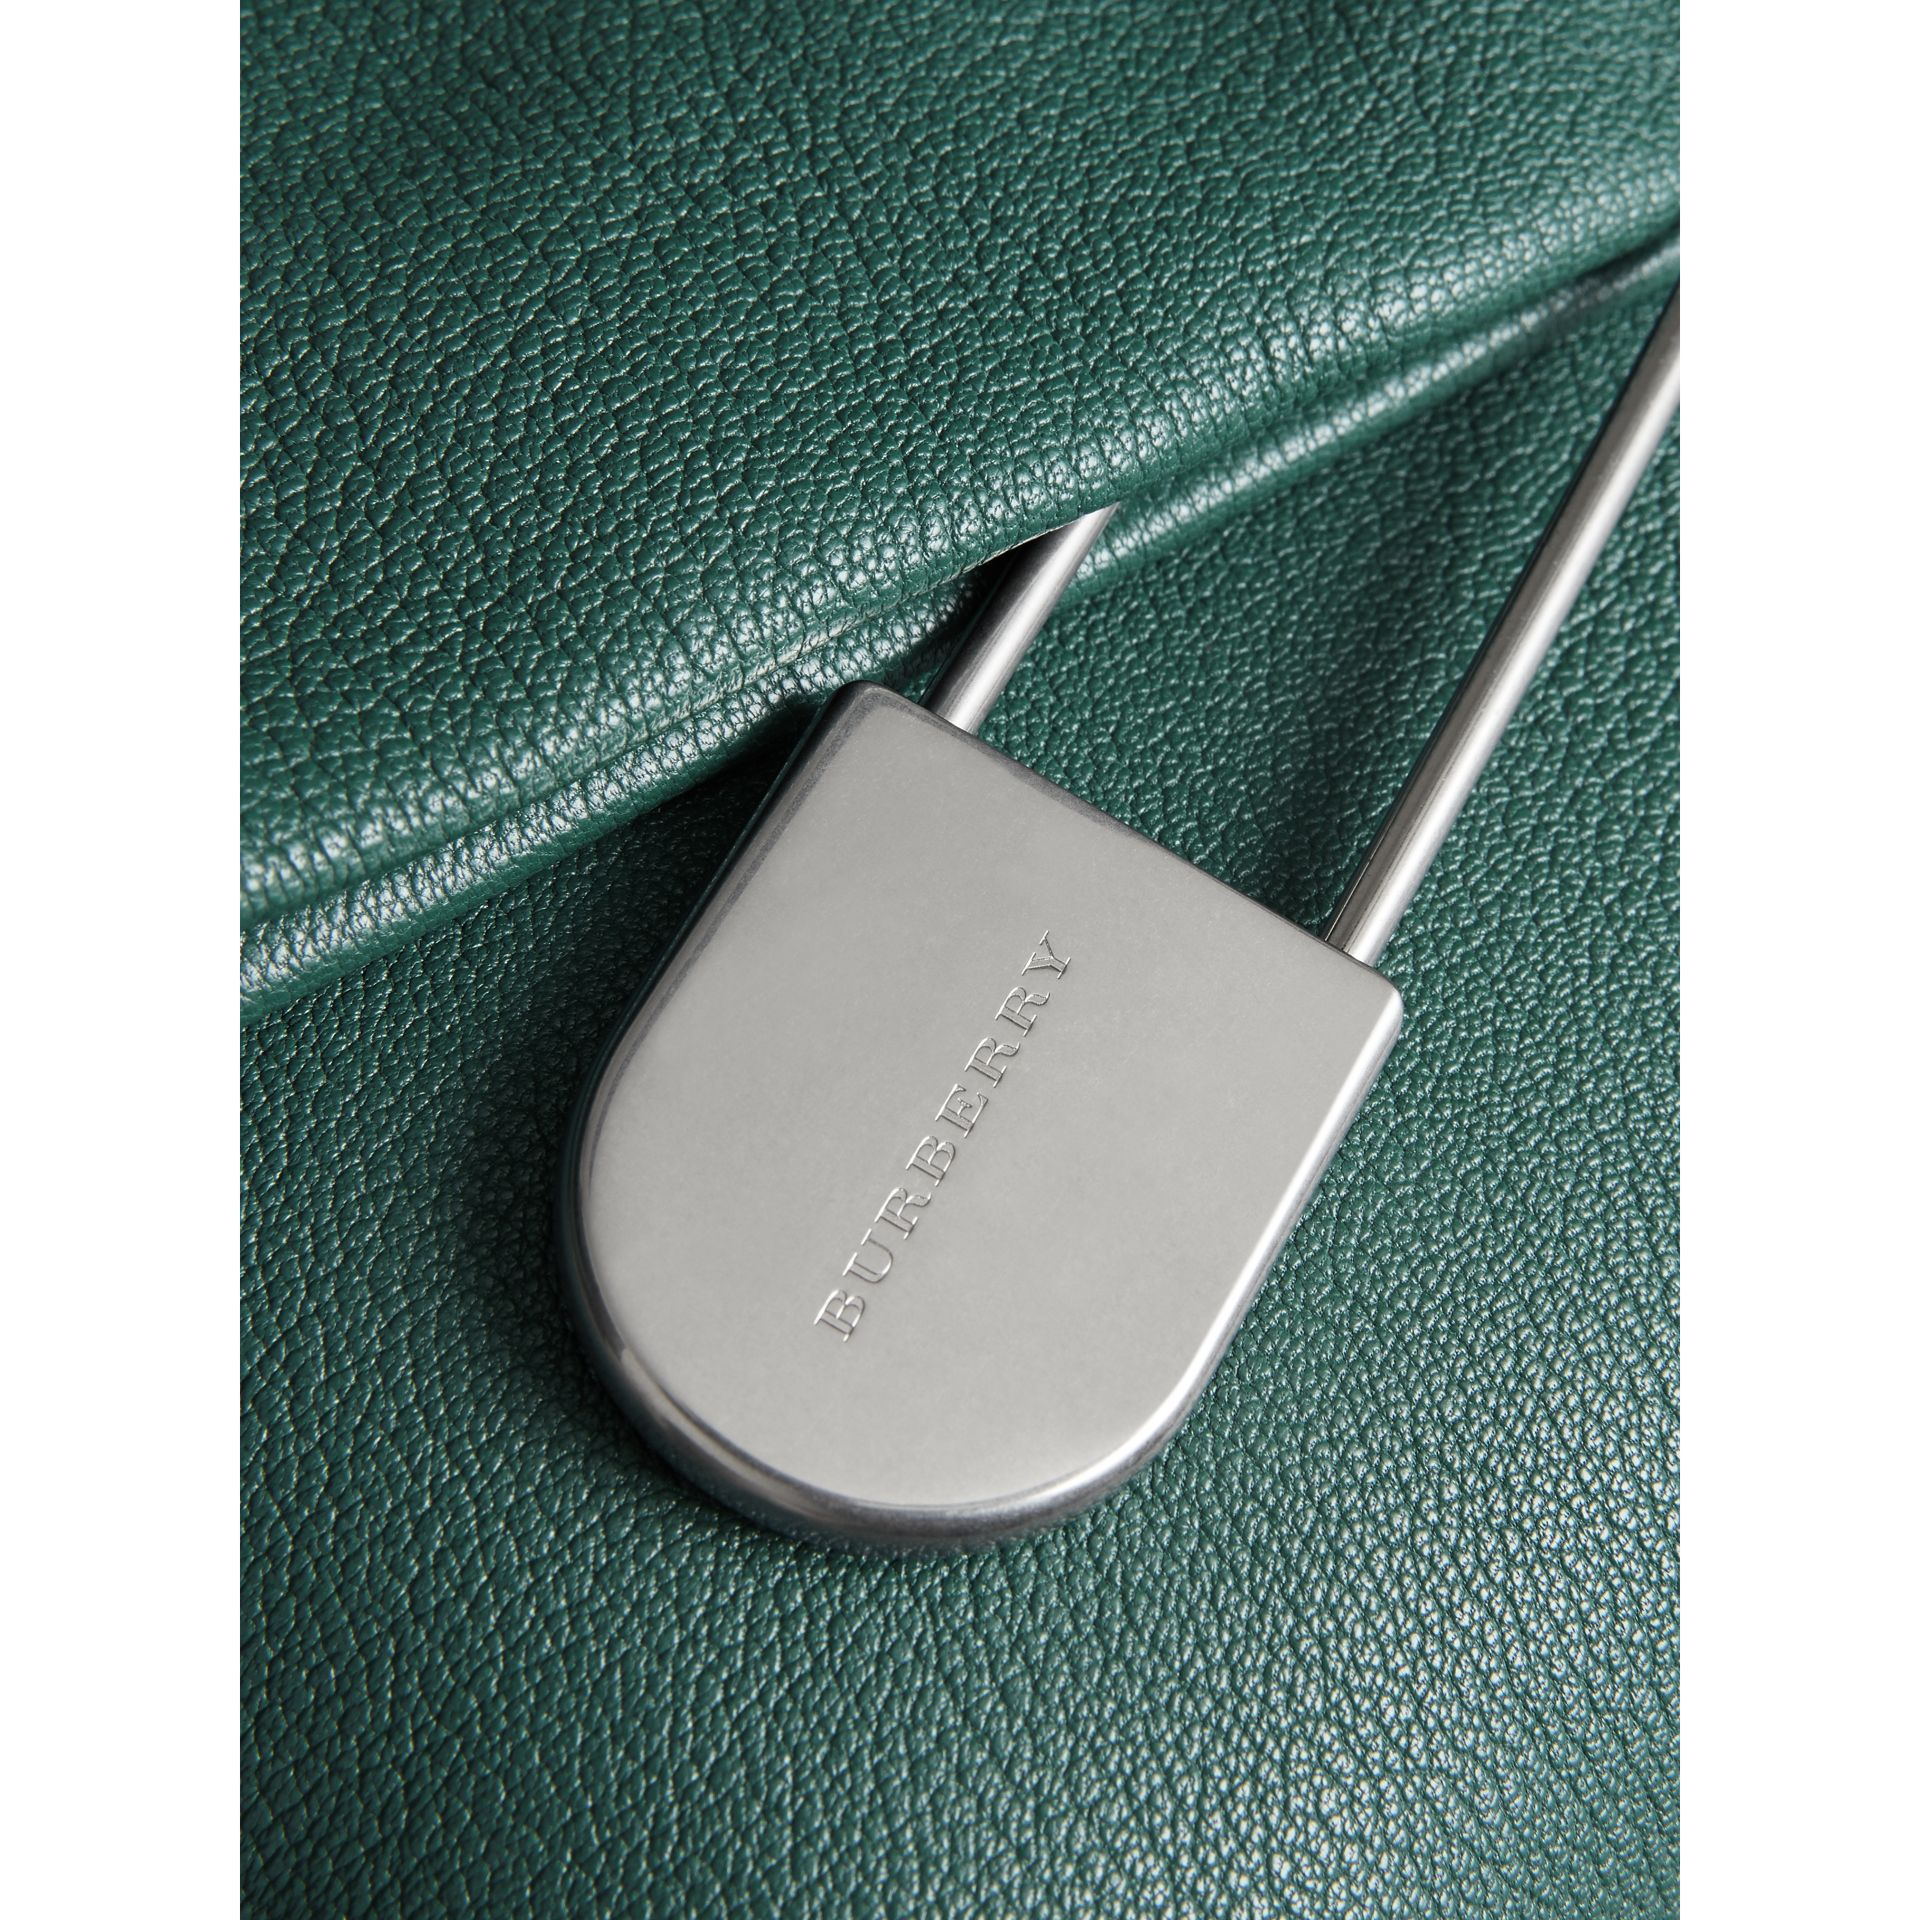 Clutch The Pin moyen en cuir (Vert Marin) - Femme | Burberry Canada - photo de la galerie 1